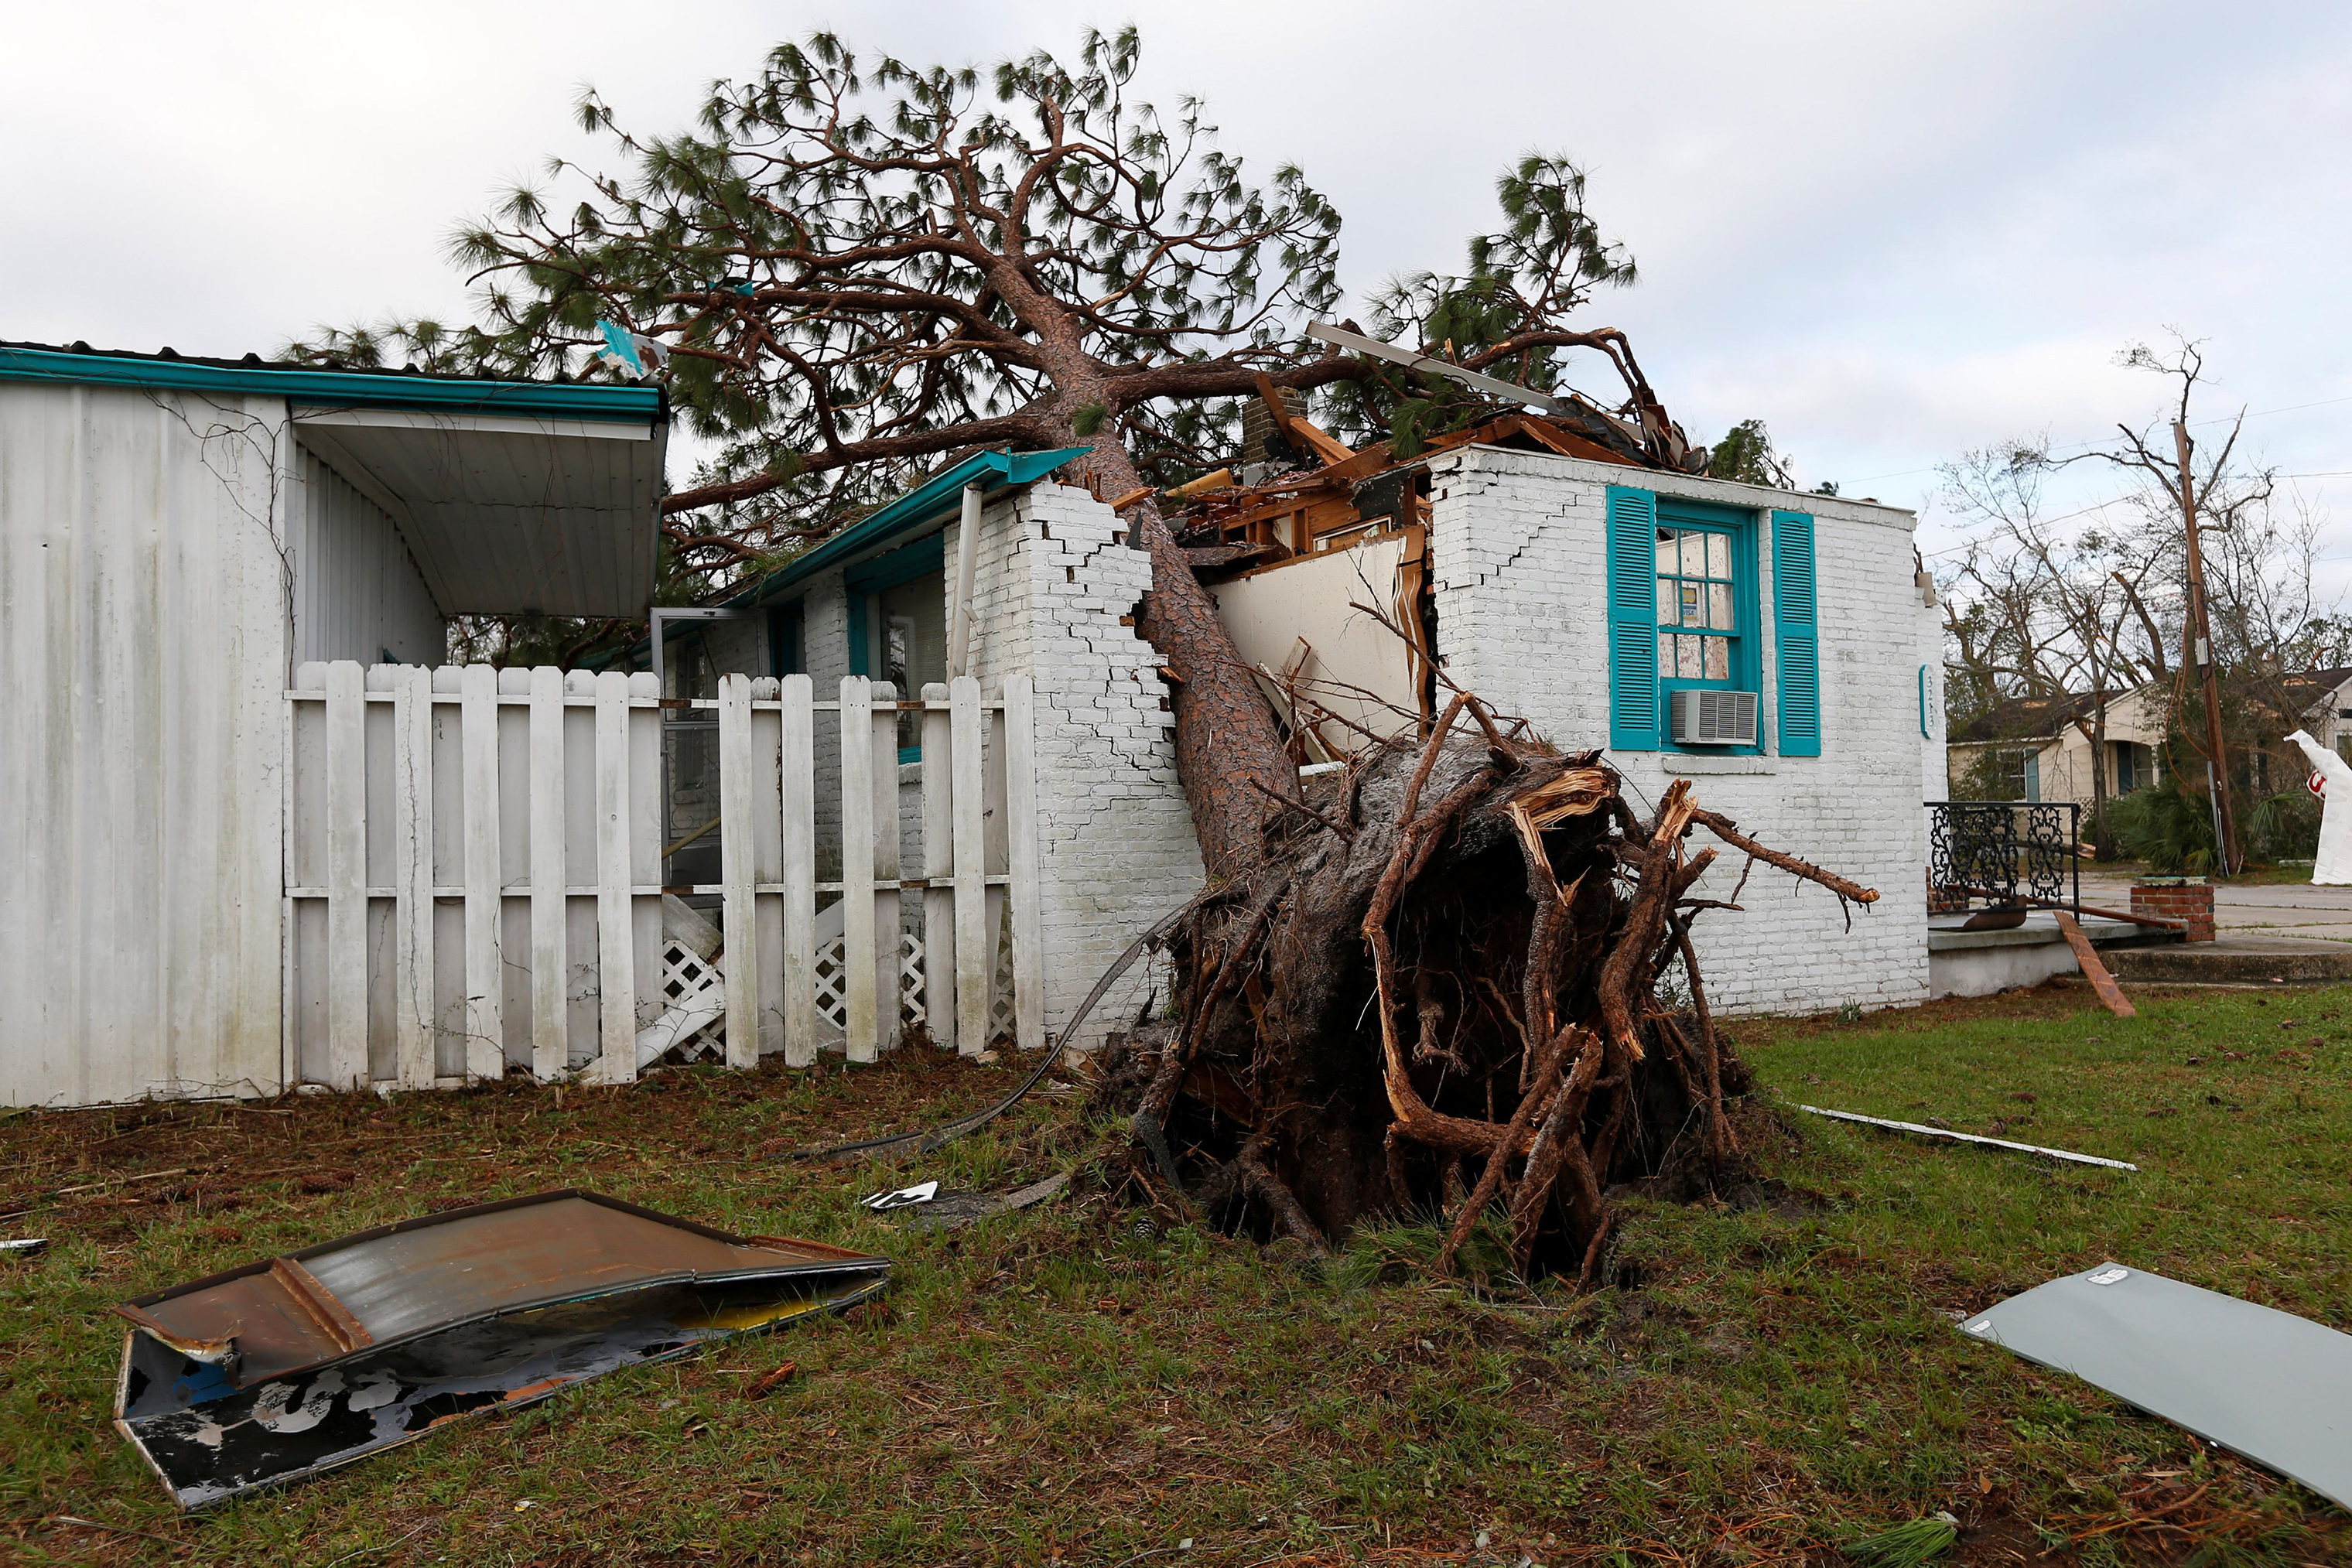 A house was damaged by Hurricane Michael in Panama City, Fla., Oct 11, 2018.